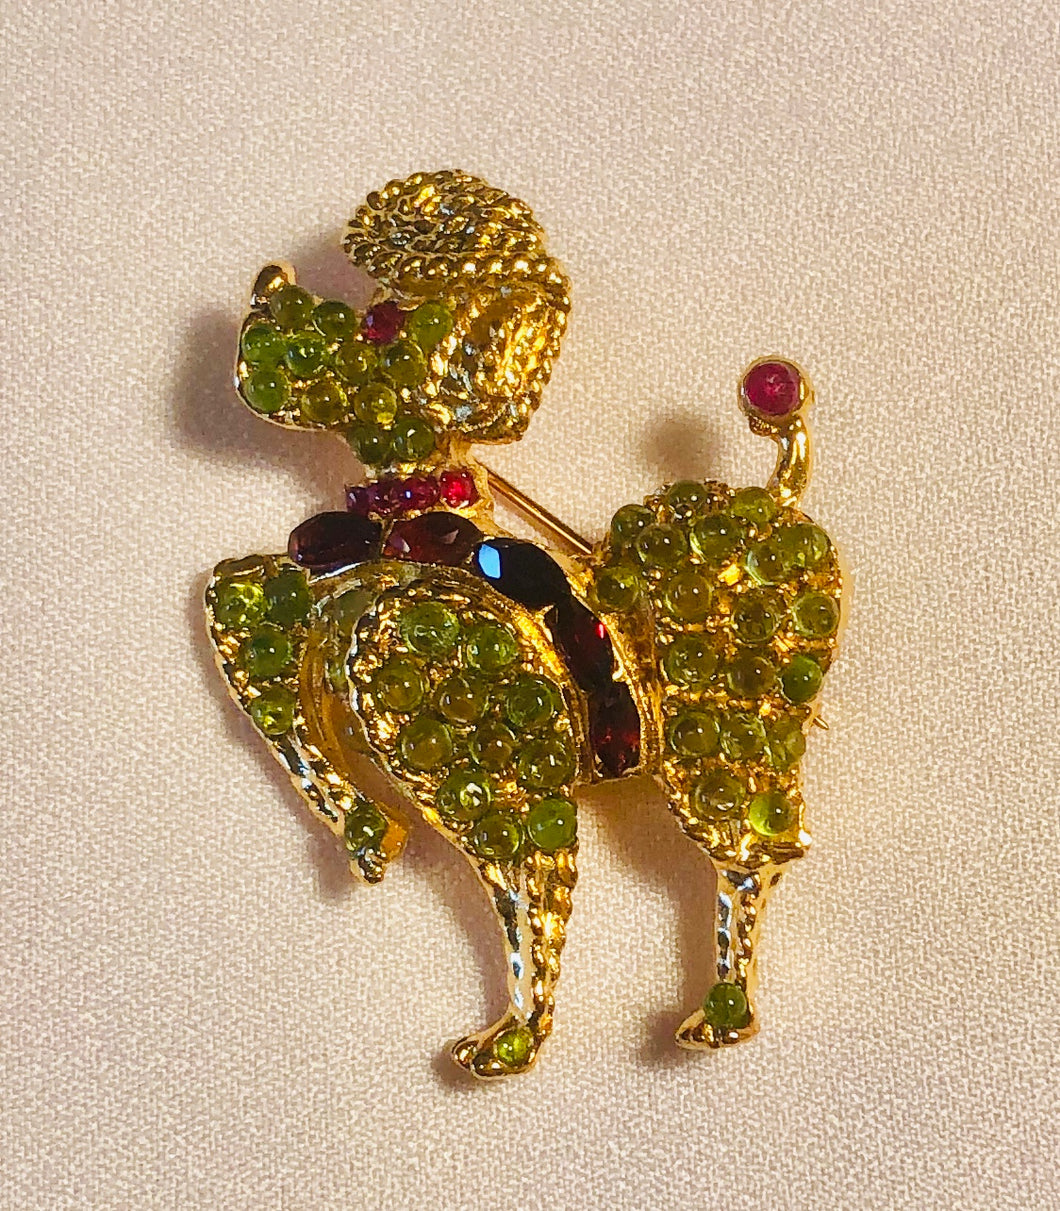 Peridot, Garnet and Genuine Ruby Eye Brooch